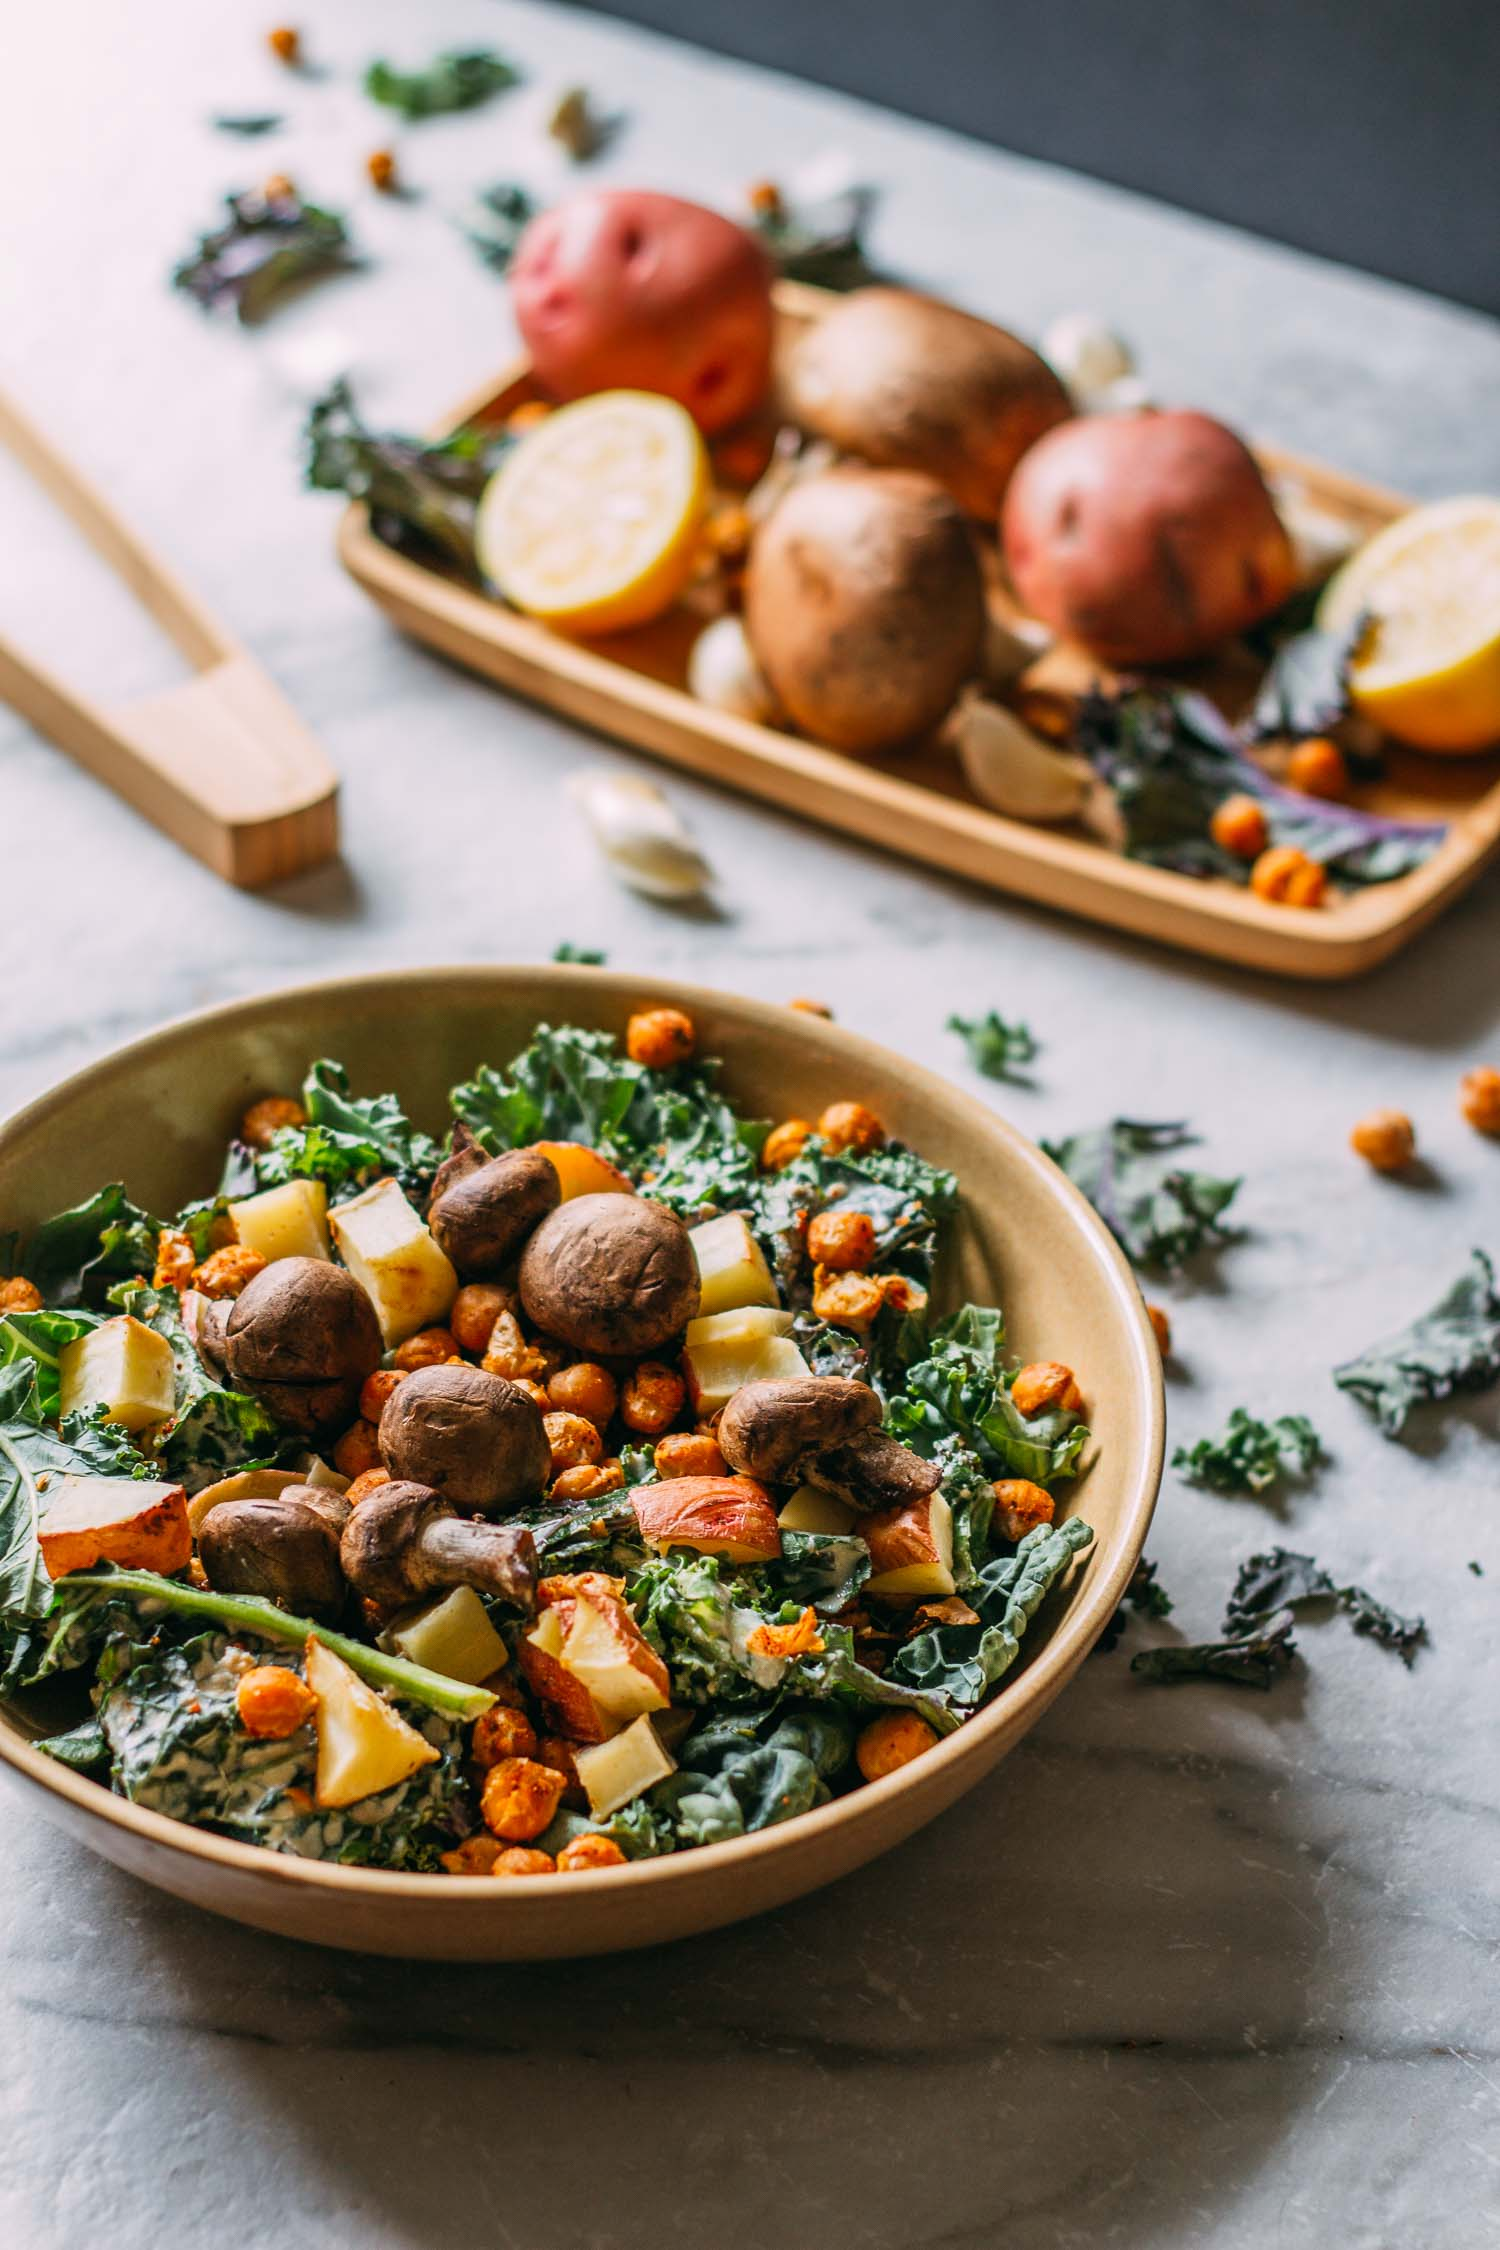 Roasted Steak-y Mushroom Kale Salad #protein #vegetarian #chickpeas #wfpbno #lunch #cookout #sidedish